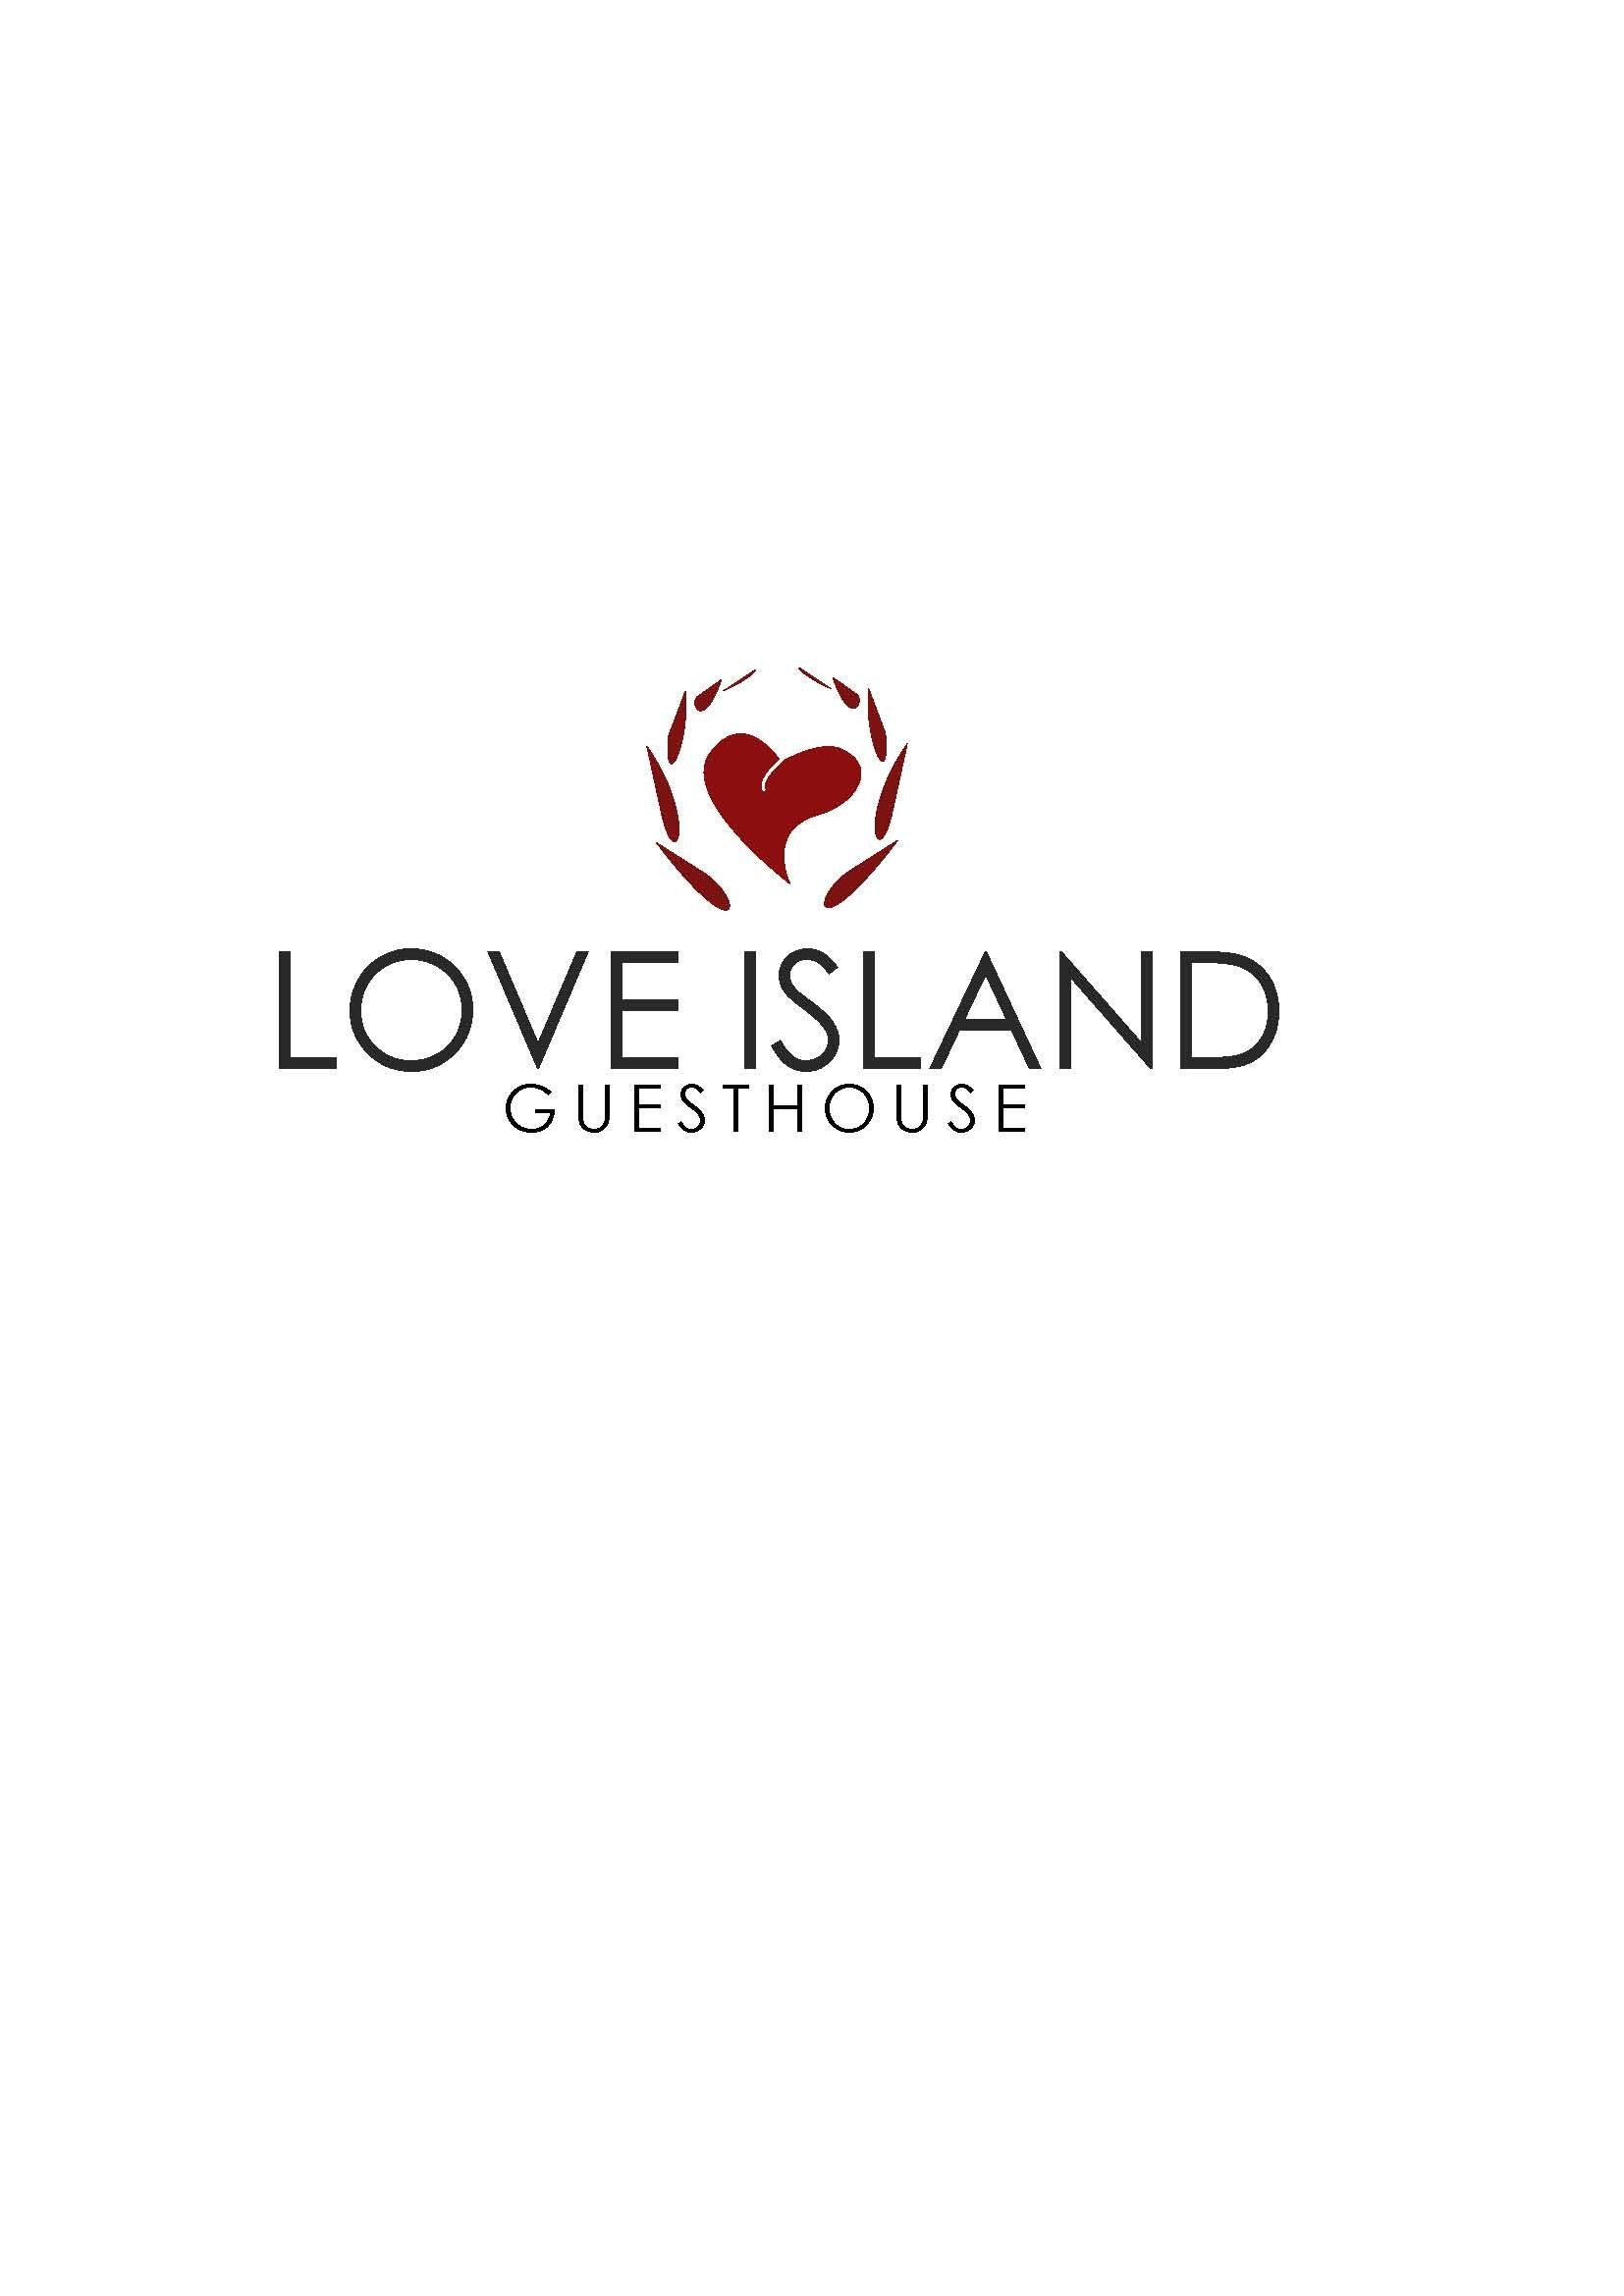 Love Island Guesthouse